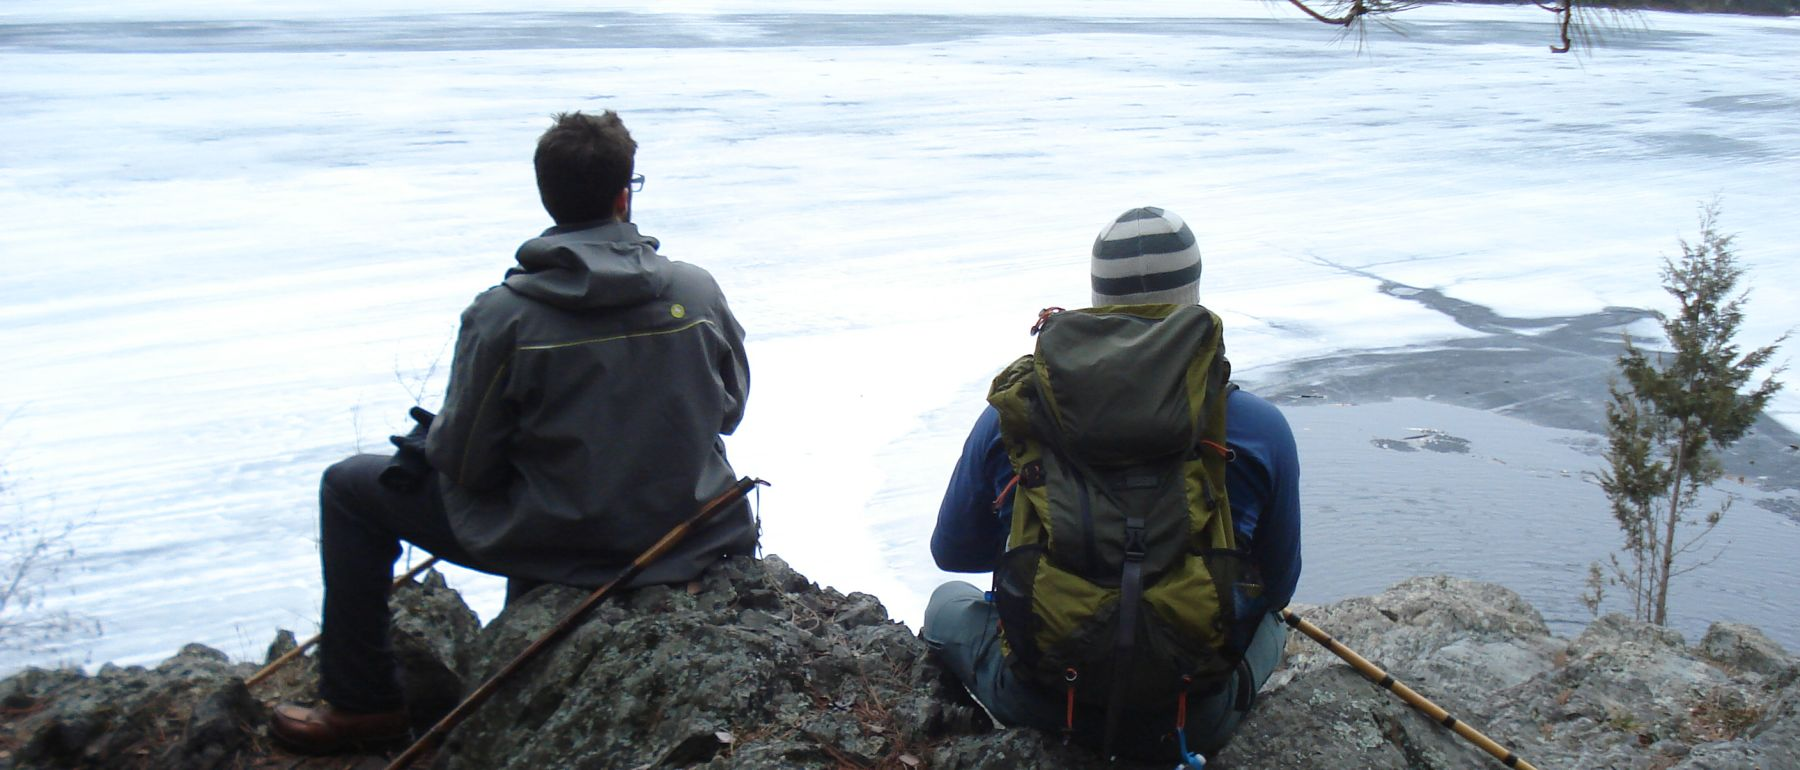 Hikers looking at scenic frozen pond near Grand Ely Lodge